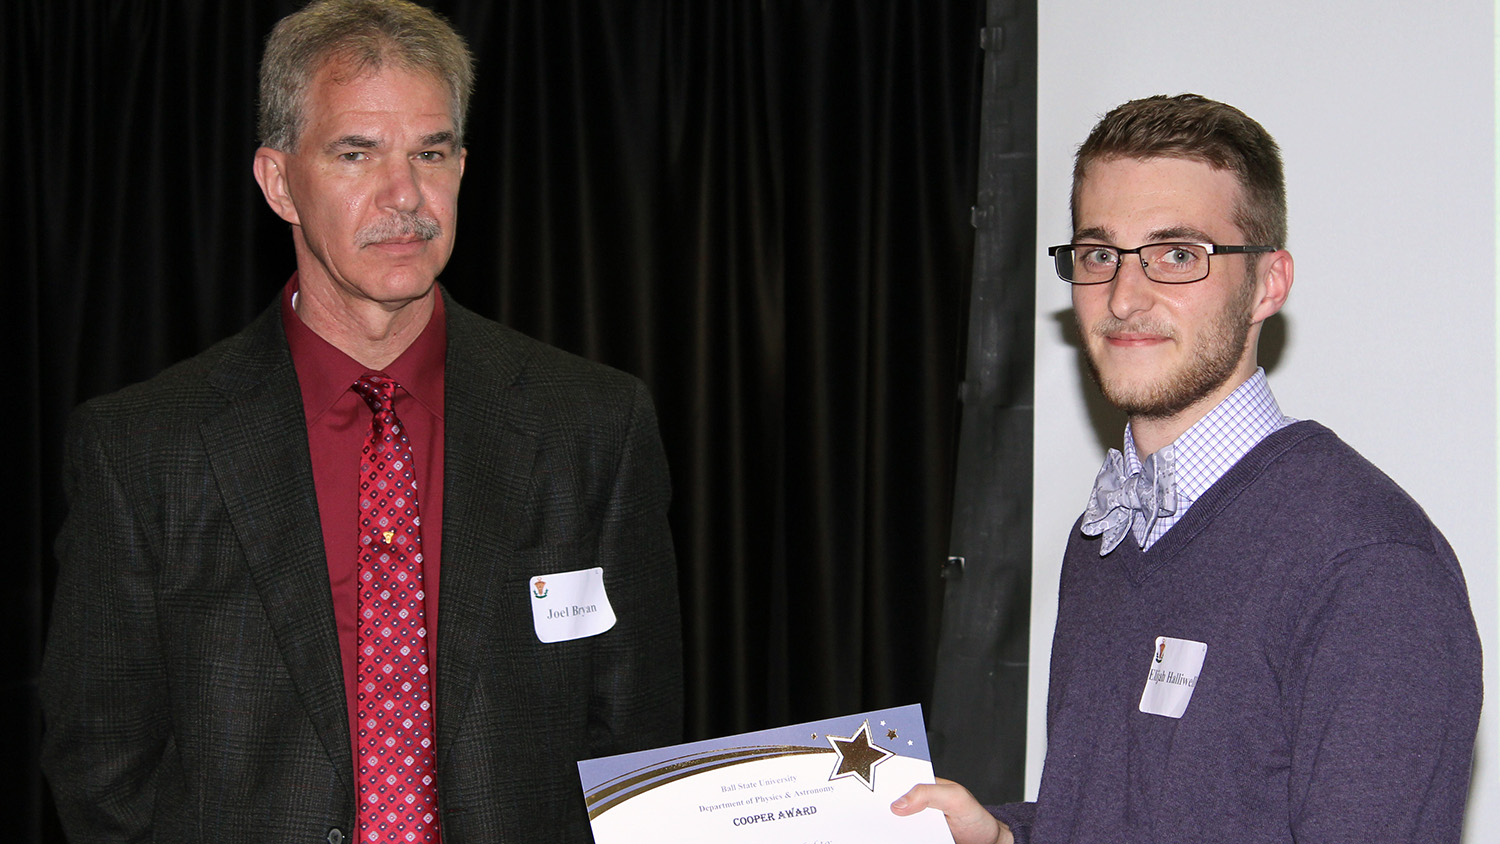 Student receiving the Cooper Award